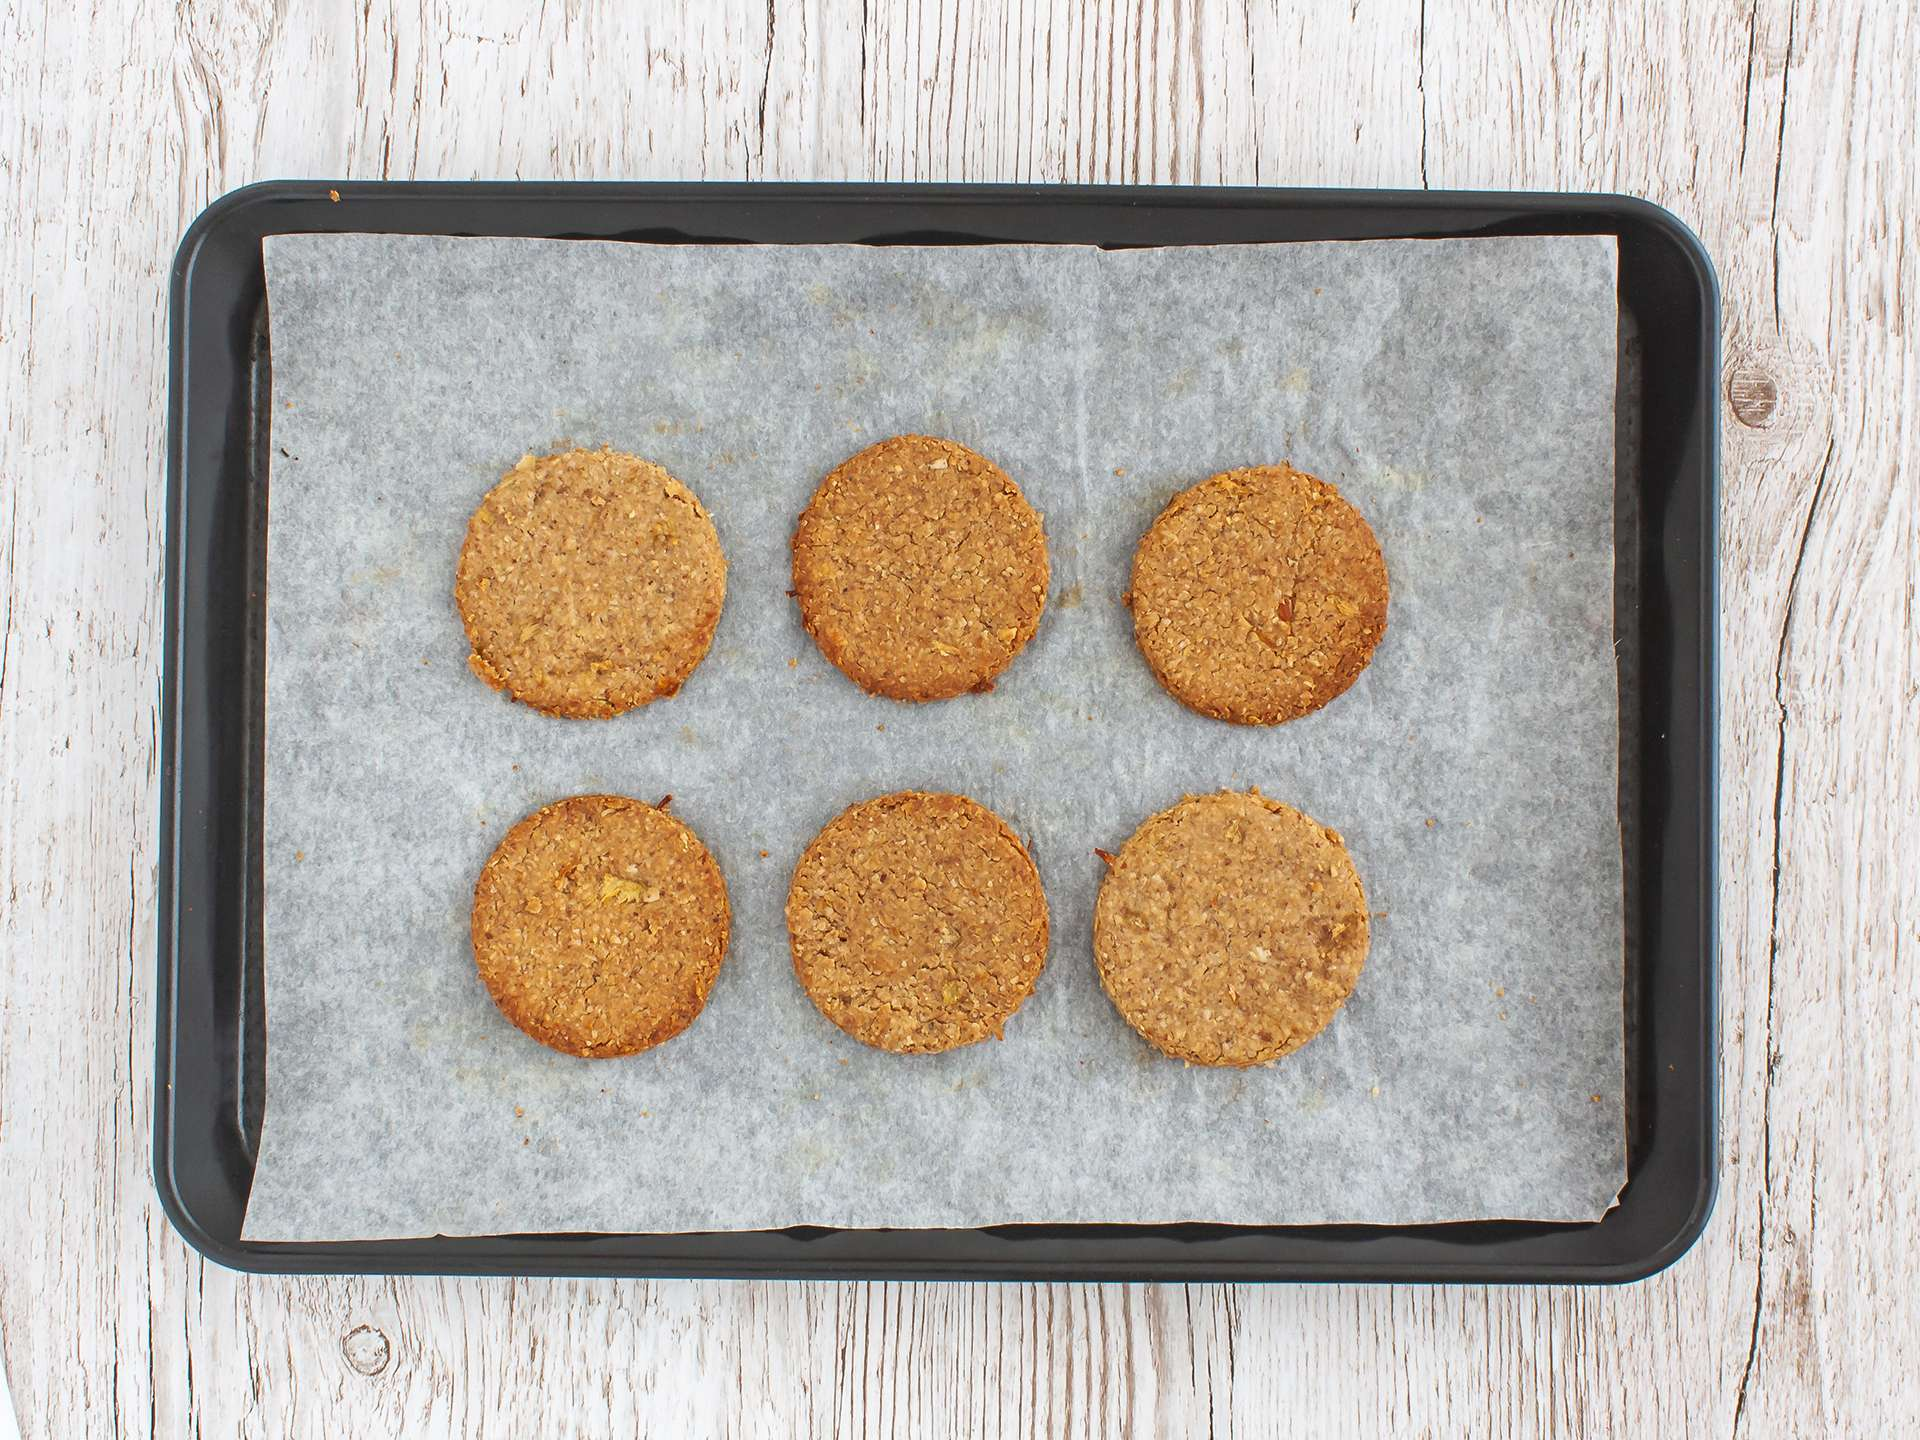 Step 4.2 of Gluten Free Oatmeal Digestive Biscuits